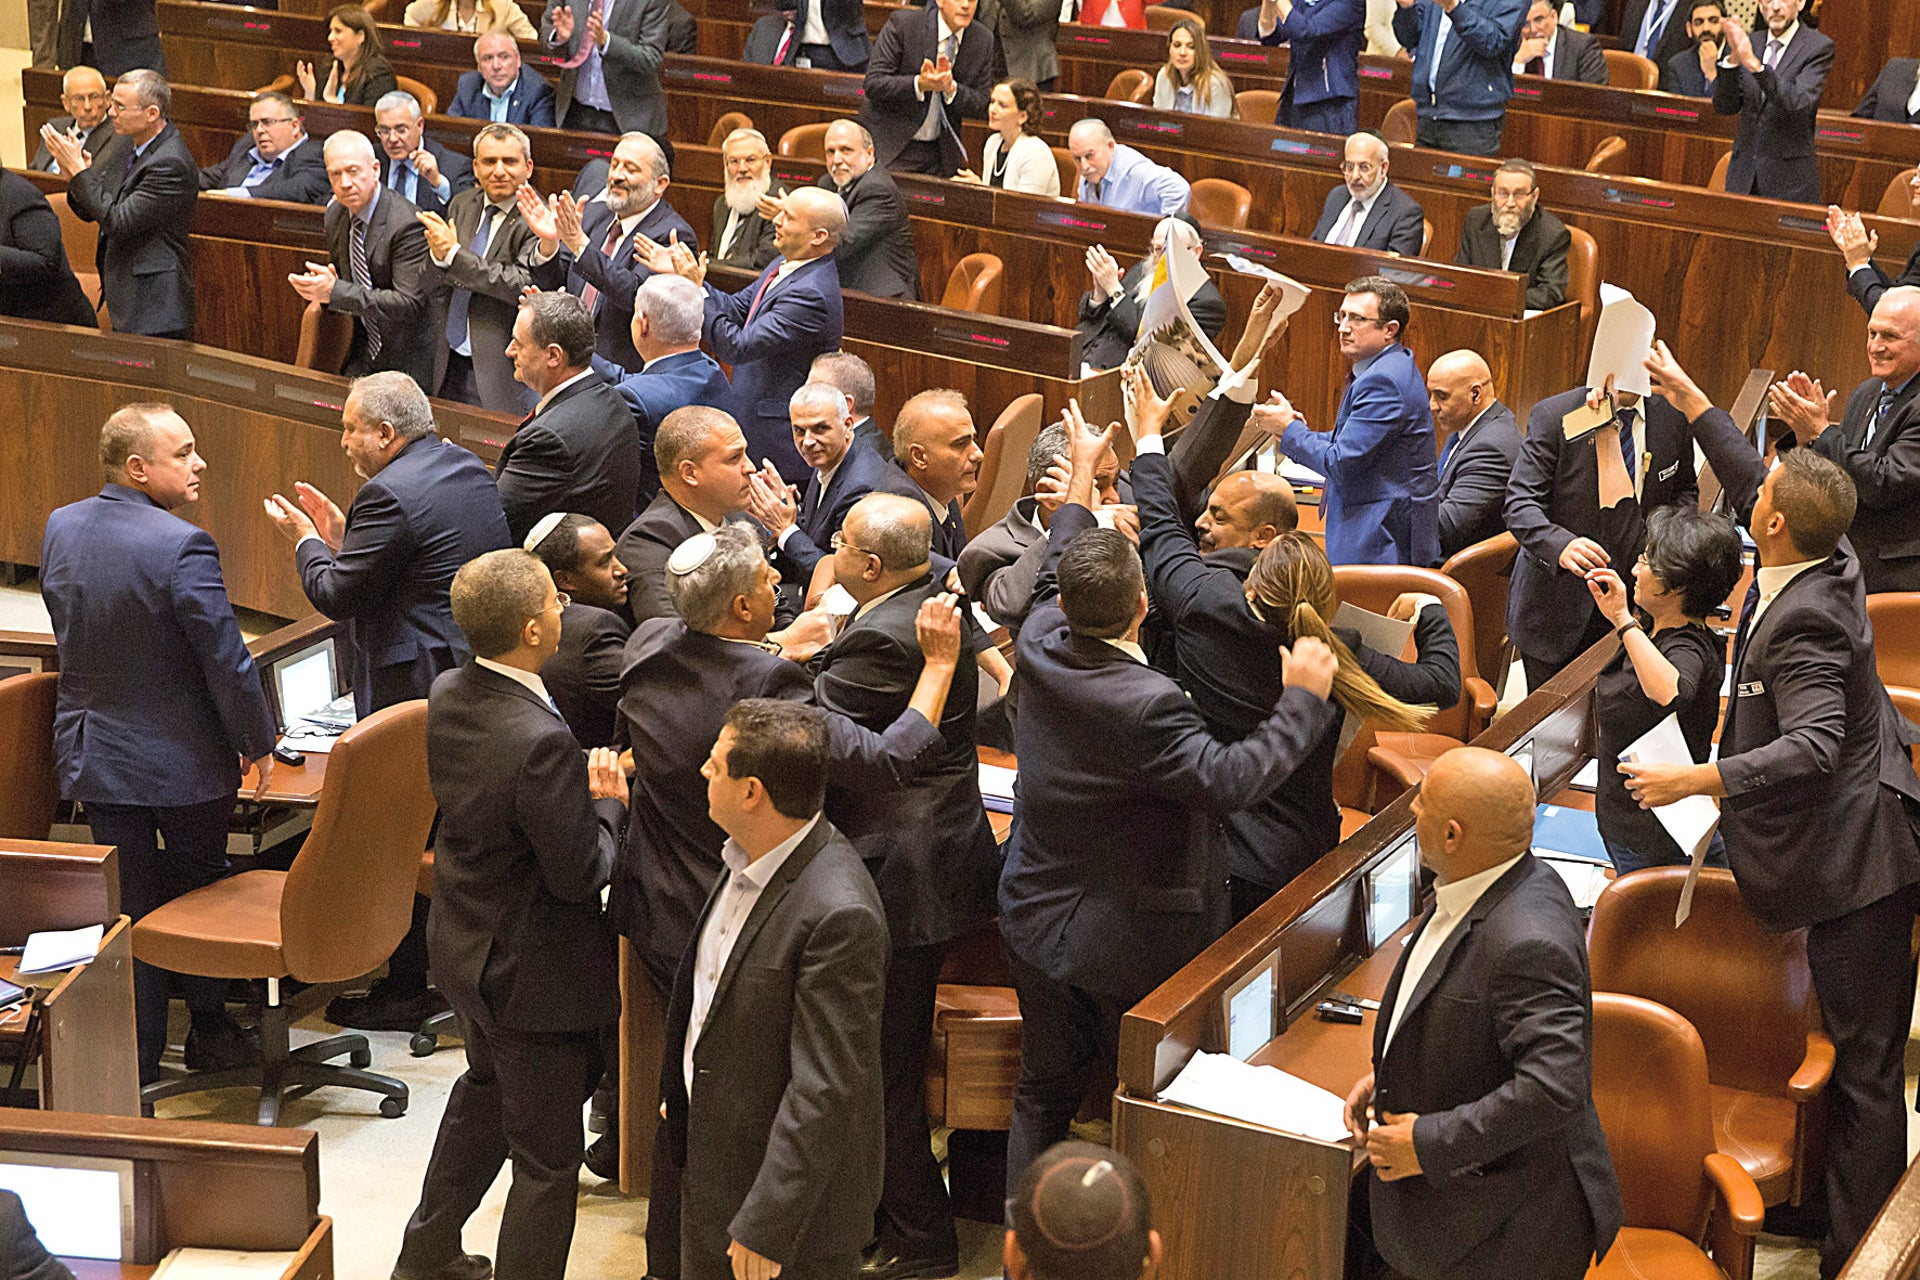 Arab Knesset members protesting the decision to move the U.S. Embassy to Jerusalem. Their protest got them evicted from the House.